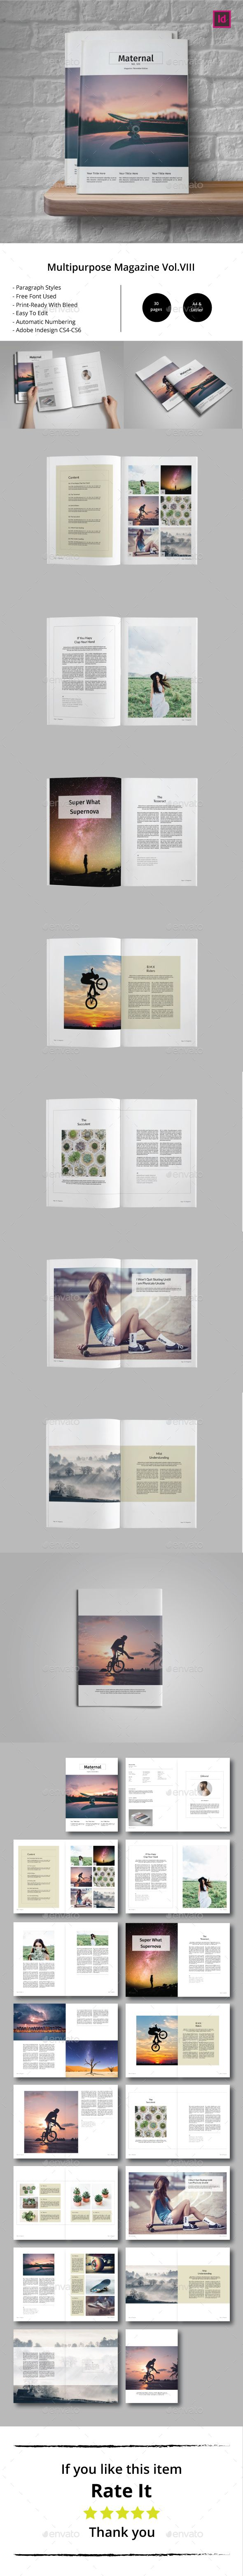 Multipurpose Magazine Template Vol.VIII — InDesign INDD #colorfull #white space • Download ➝ https://graphicriver.net/item/multipurpose-magazine-template-volviii/18867490?ref=pxcr